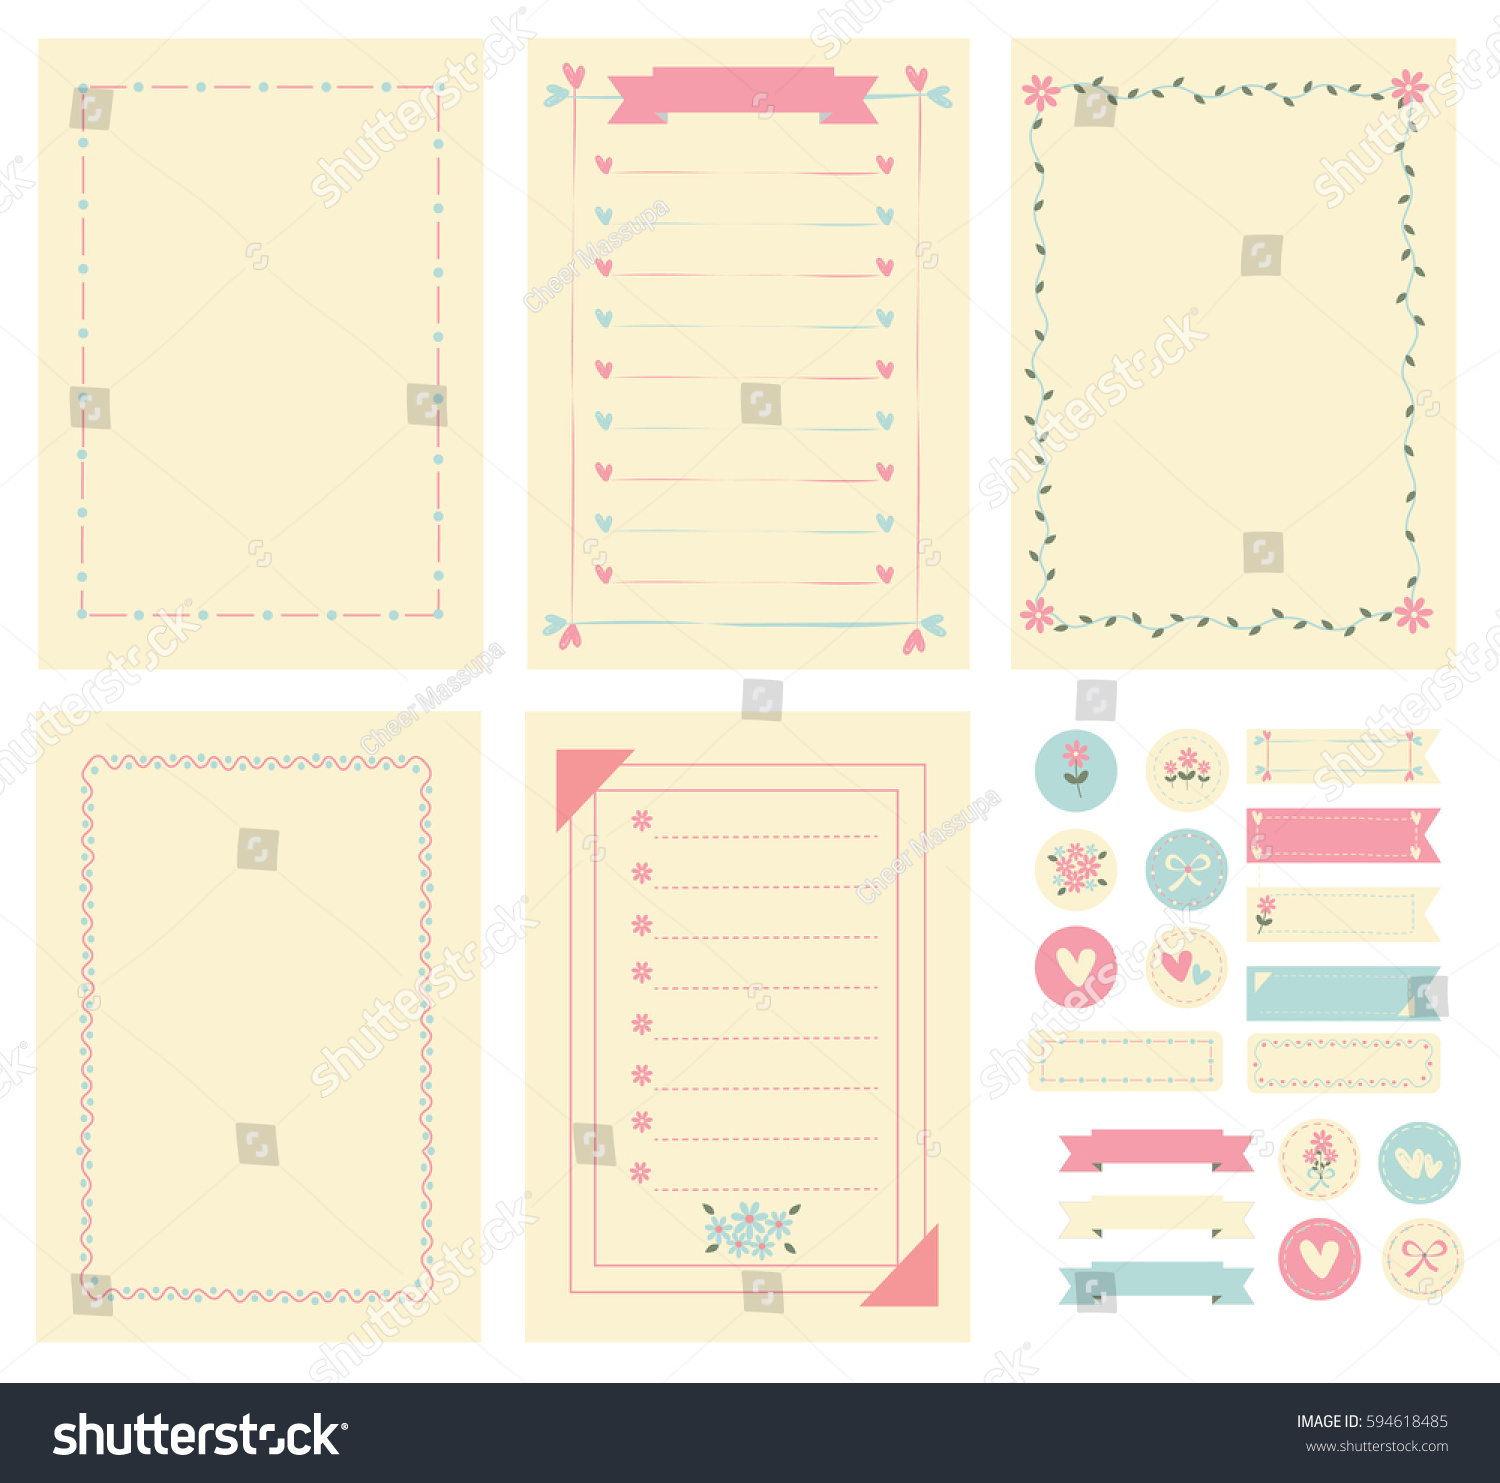 dle 30 mounting template - notebook paper template images template design ideas